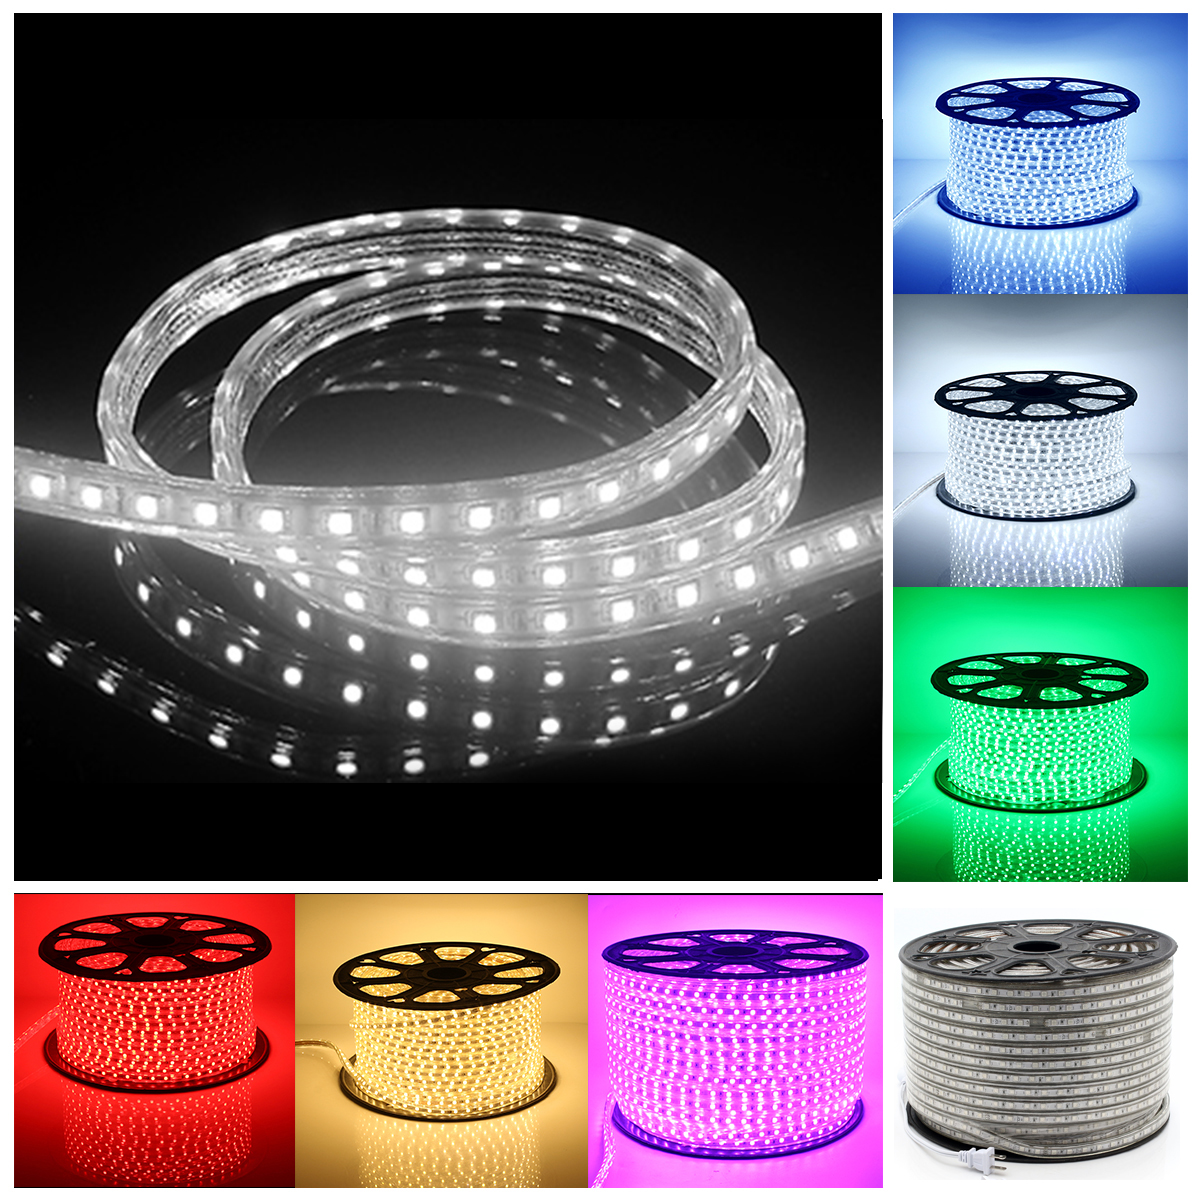 220V LED Strip Light IP67 Waterproof 30M 60 LEDs/ meter Ultra Bright Flexible 5050 SMD LED Outdoor Garden Home Strip Rope Light uf4007 4007 dip 1a1000v